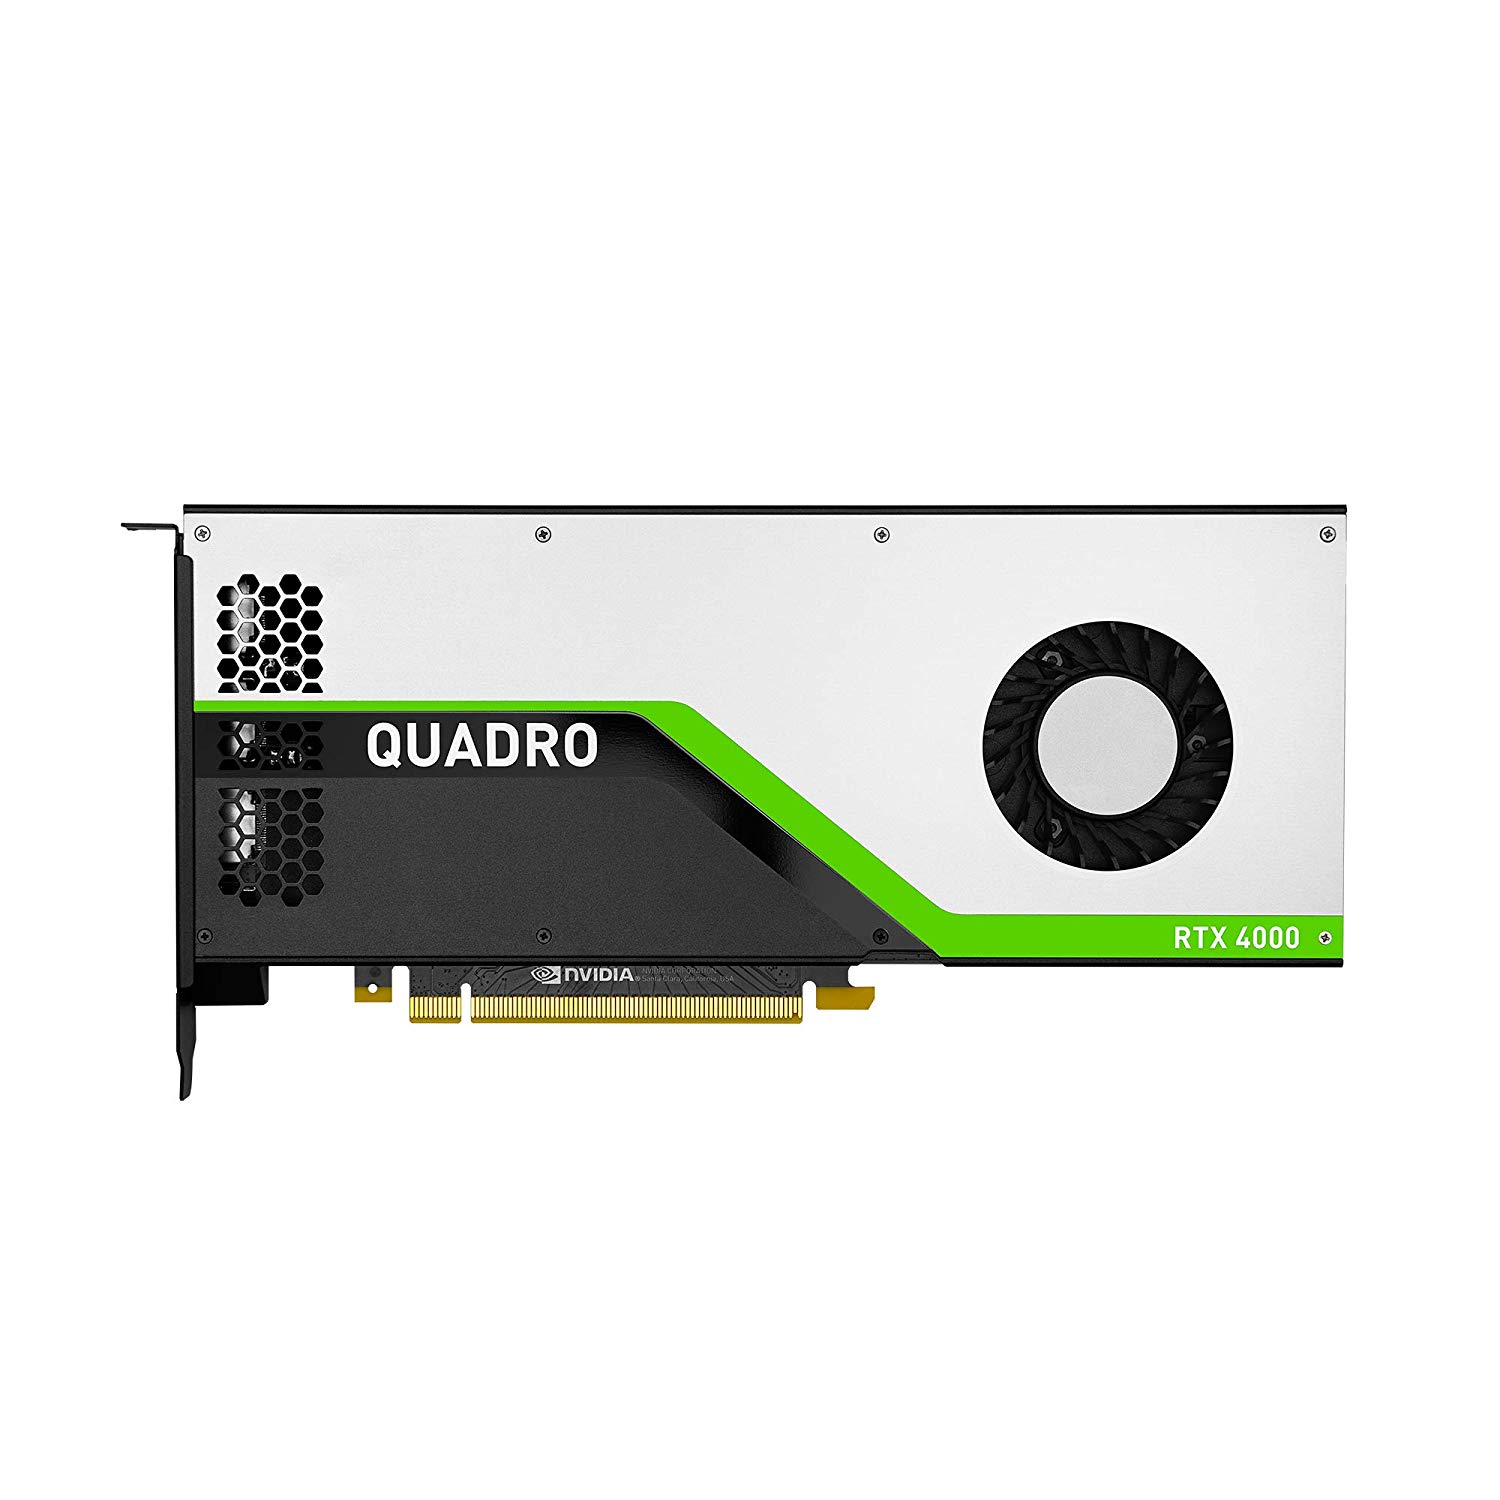 Internal Computer Expansion PNY Quadro RTX 4000 8GB DDR6 Graphics Card